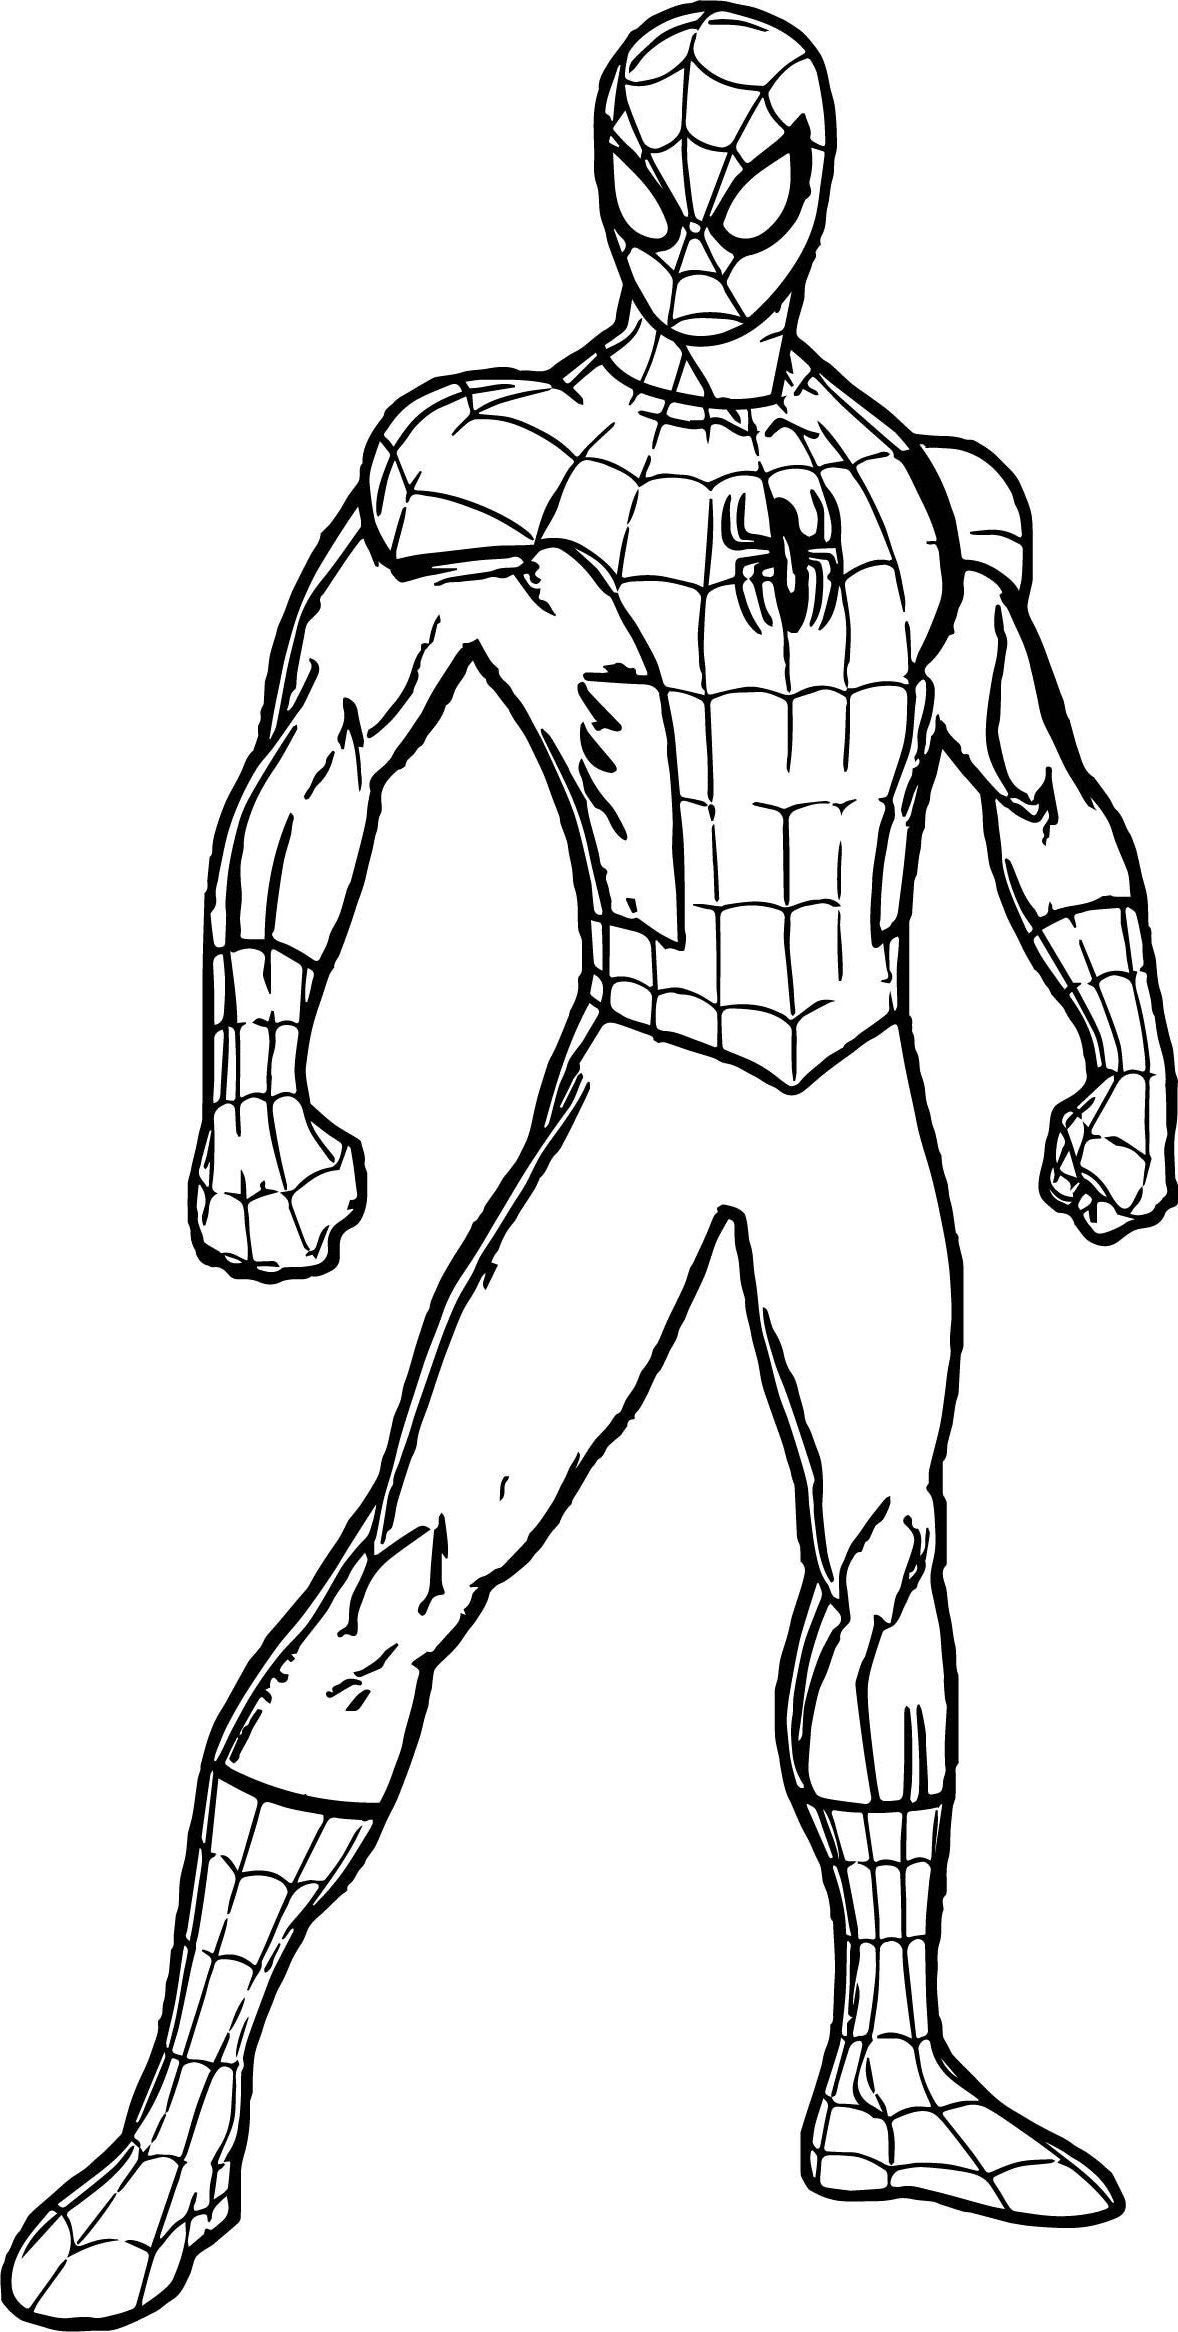 coloring pictures spiderman updated 100 spiderman coloring pages september 2020 pictures spiderman coloring